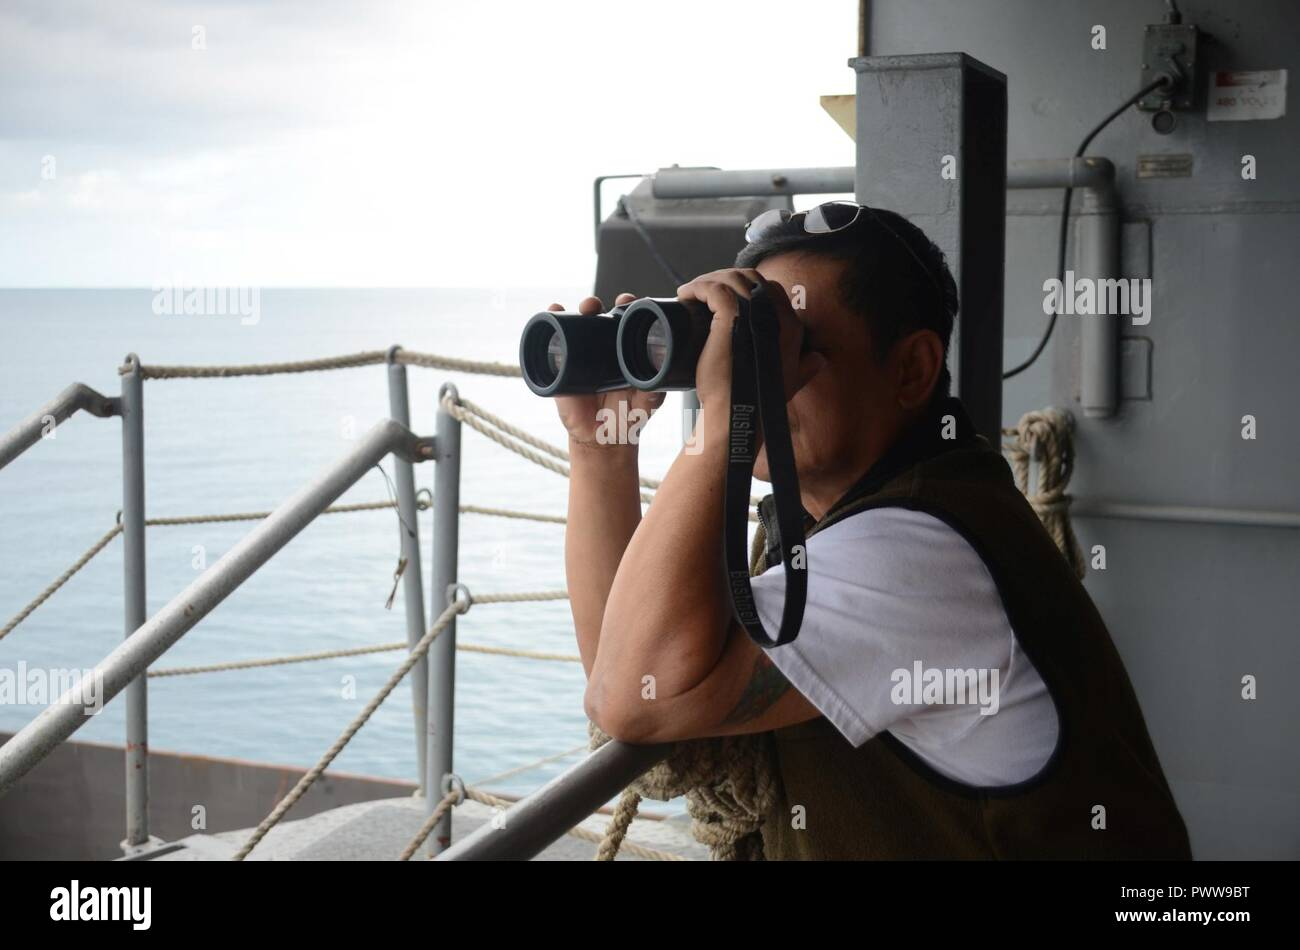 NOUMEA, New Caledonia (July 03, 2017) Sison Emerson, Able-Bodied Watchstander onboard USNS Sacagawea (T-AKE 2), stands watch off shore Noumea, New Caledonia in support of Koa Moana 17, July 3. Koa Moana 17 is designed to improve theater security, and conduct law enforcement and infantry training in the Pacific region in order to enhance interoperability with partner nations. ( Stock Photo